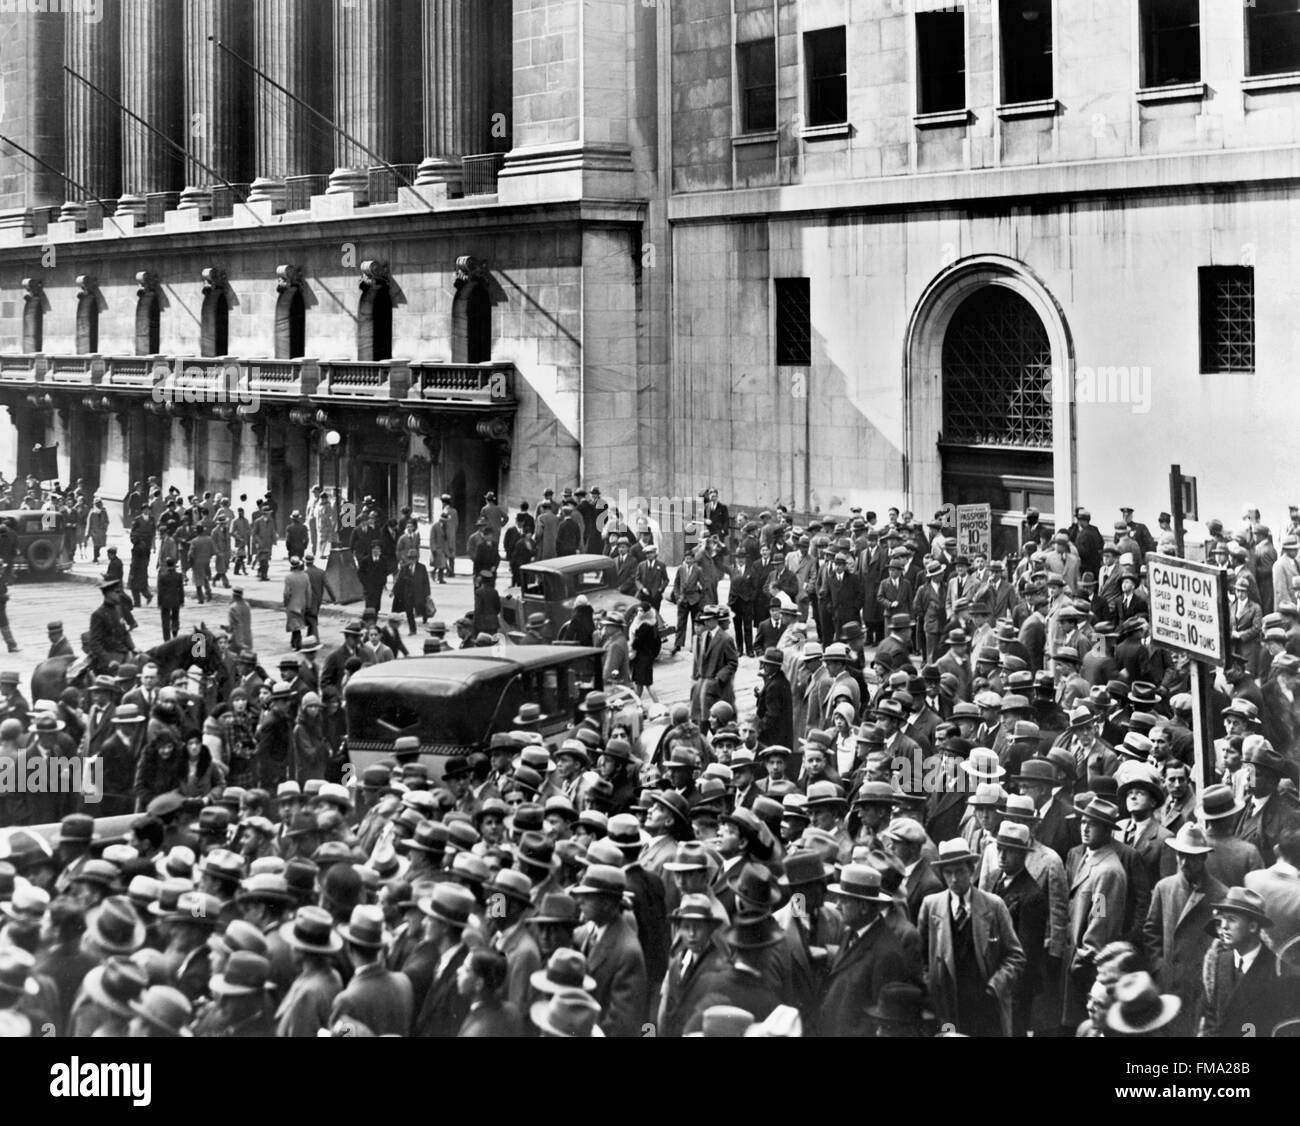 the streets of the new york stock The new york stock exchange was completed in 1903 and designed by george b post, a prolific architect at the turn of the 20th century sadly, a large number of his buildings have been demolished.